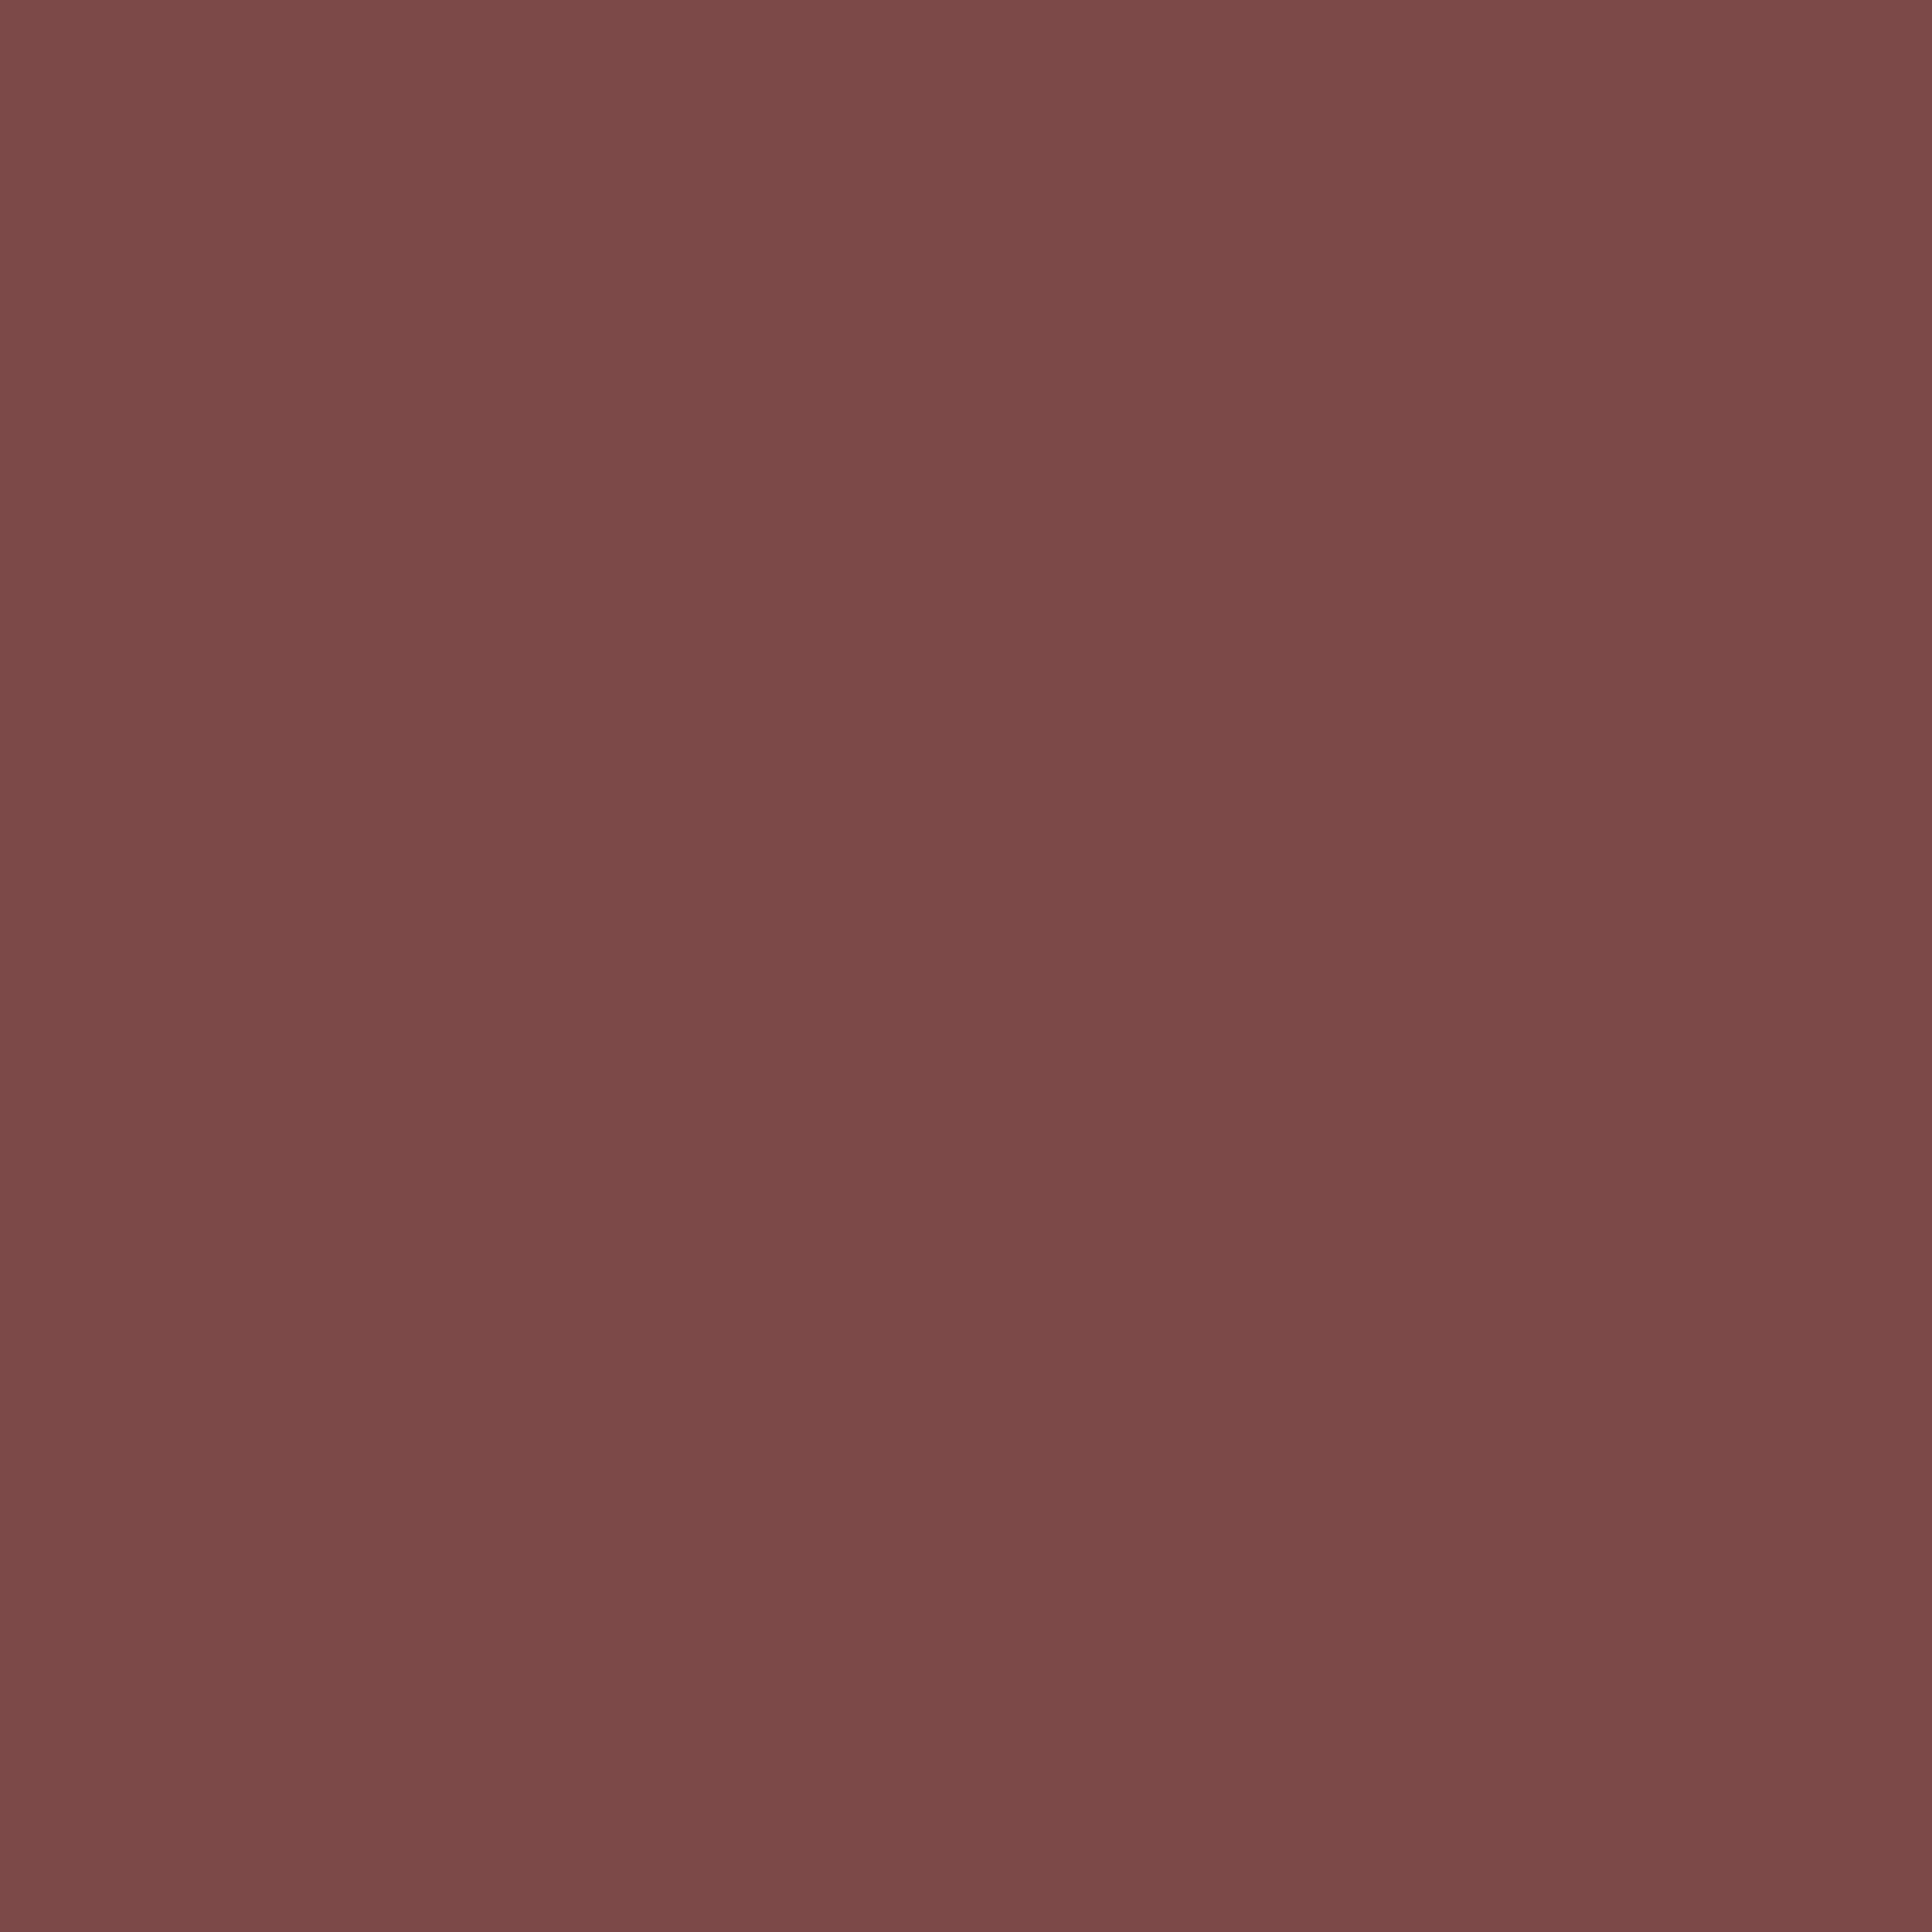 2732x2732 Tuscan Red Solid Color Background